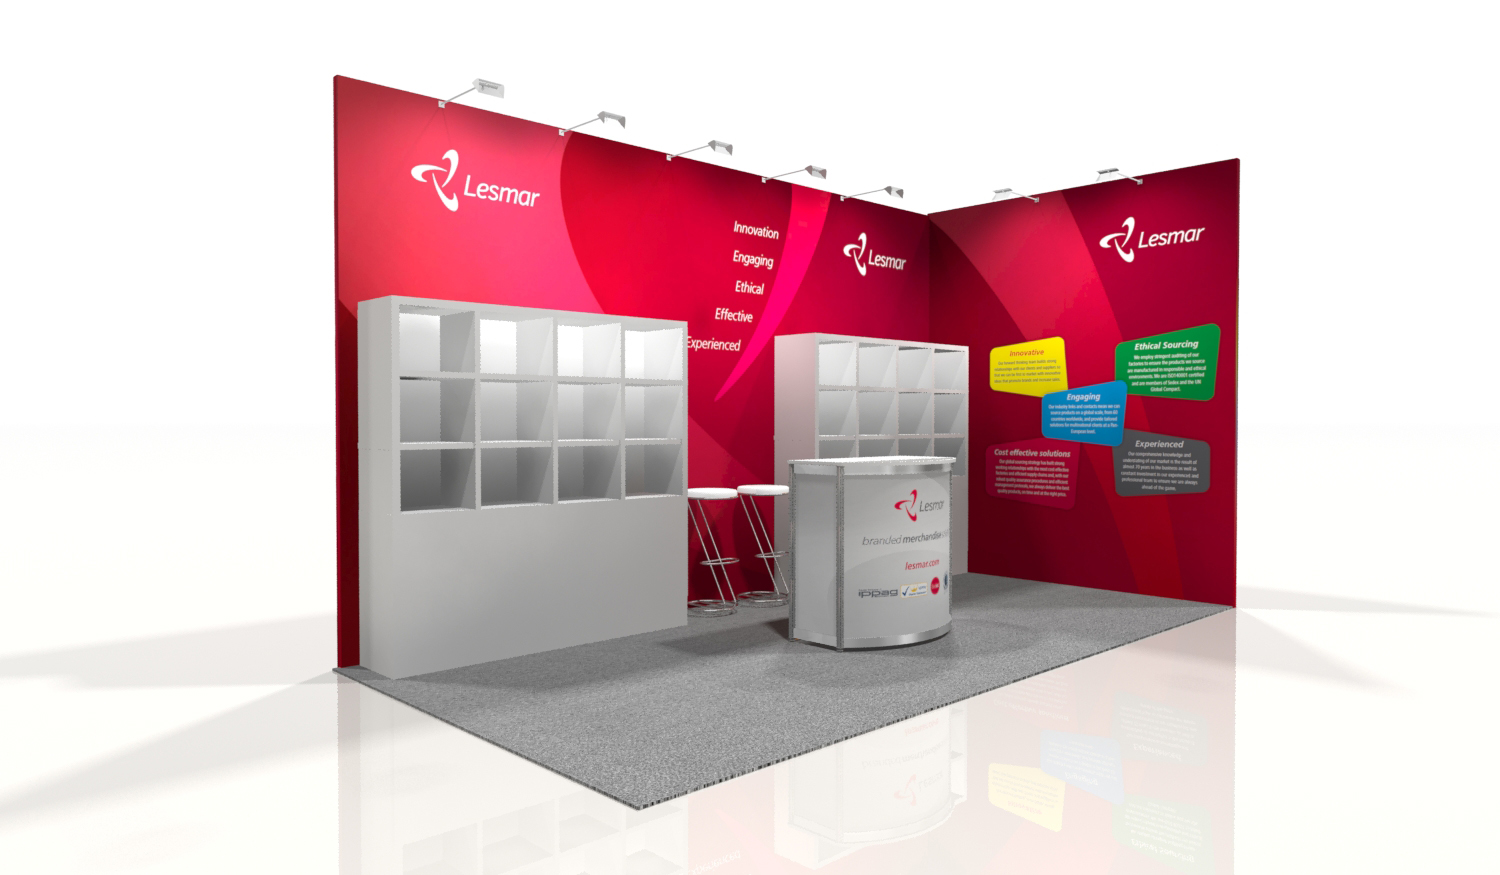 Marketing Exhibition Stand Jobs : Latest design work lesmar stand for marketing week